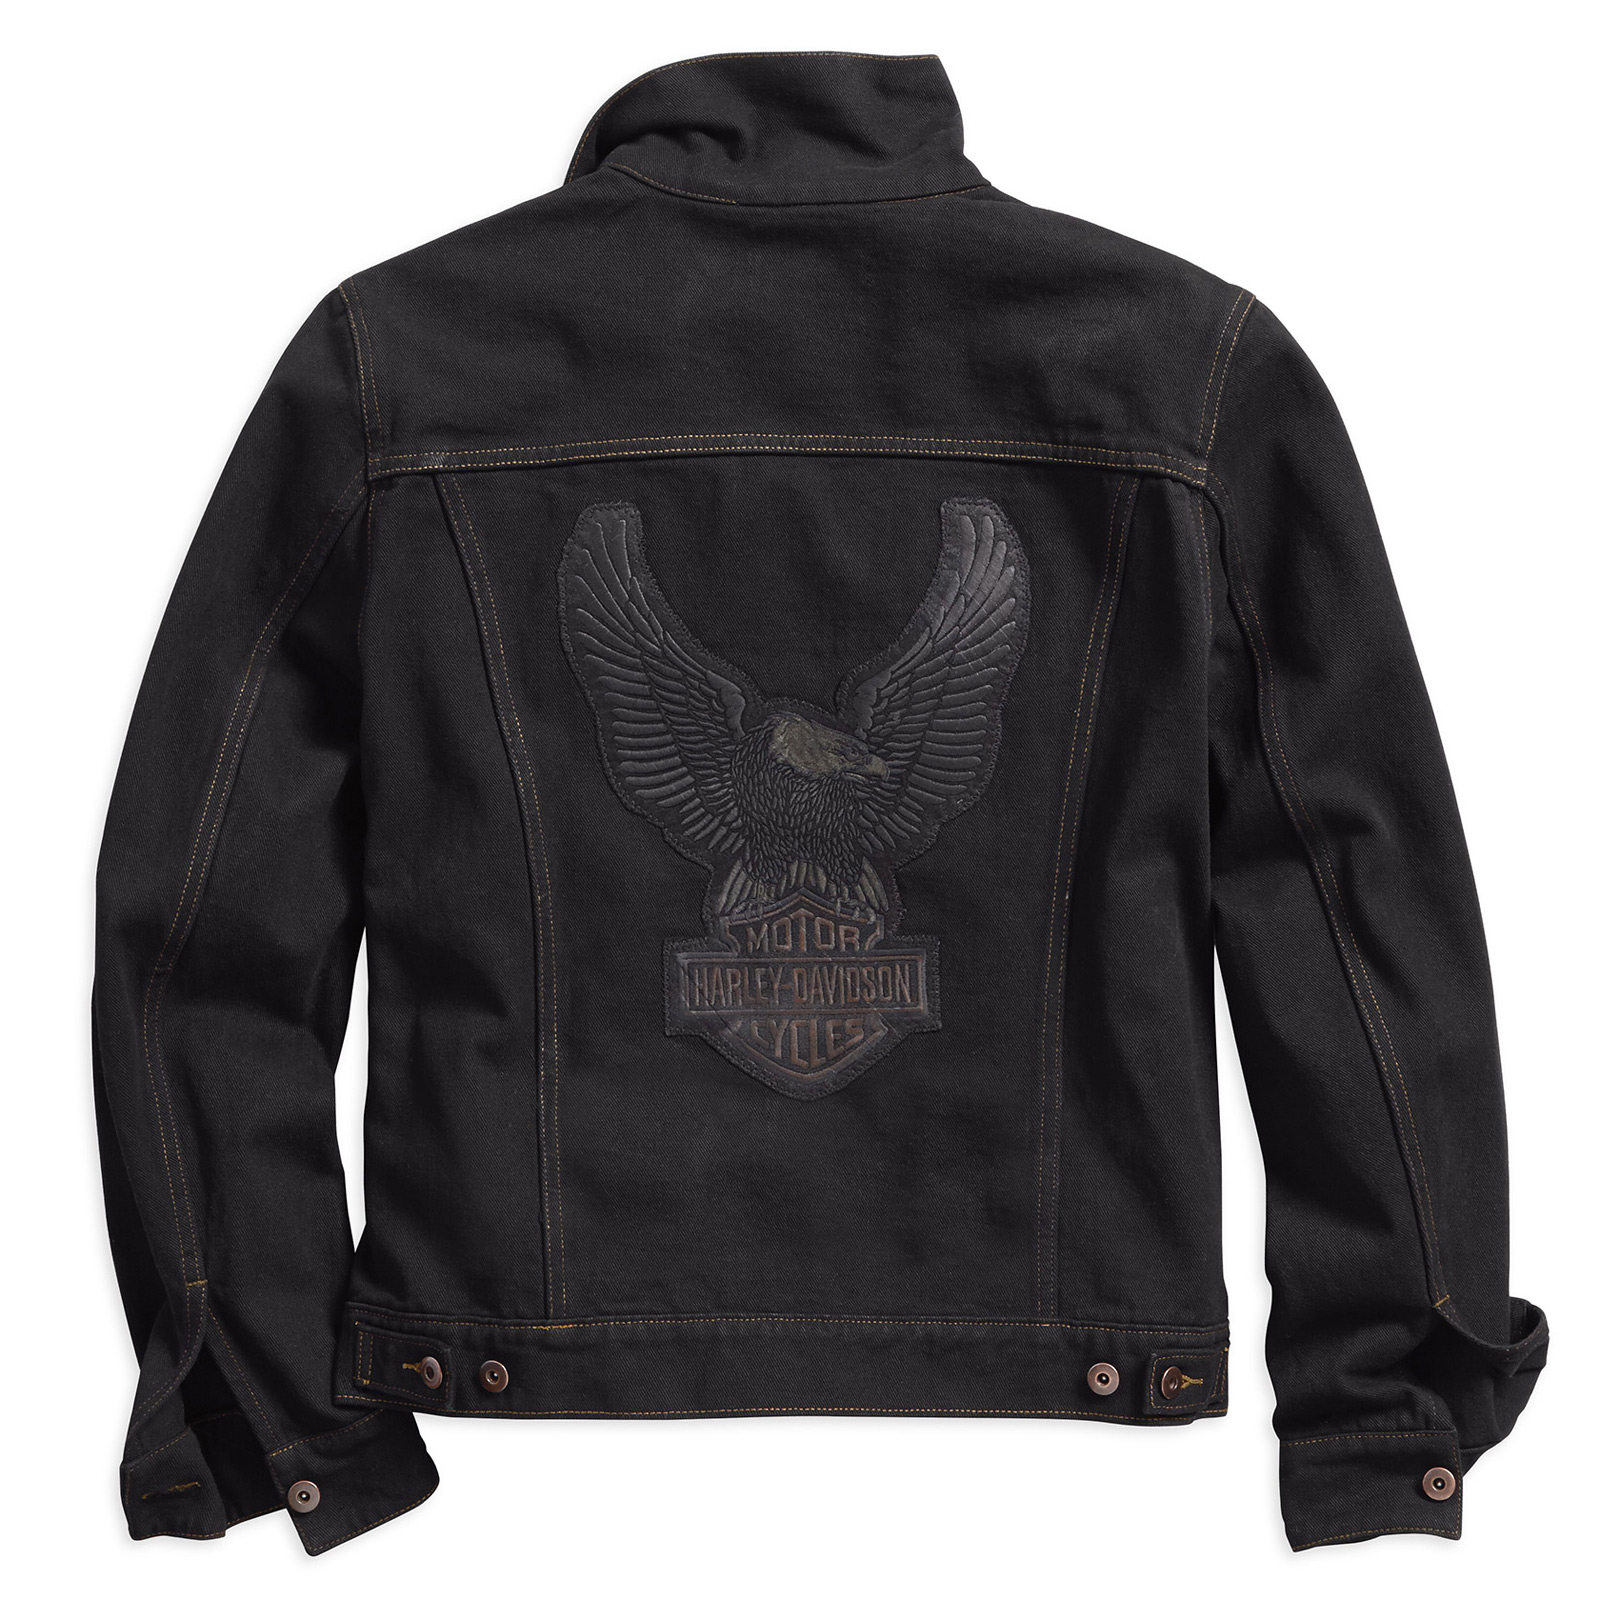 bec27eee8a48 ... H-D Motorclothes Harley-Davidson Men's Denim Jacket Eagle Appliqué,  black - 98592- ...